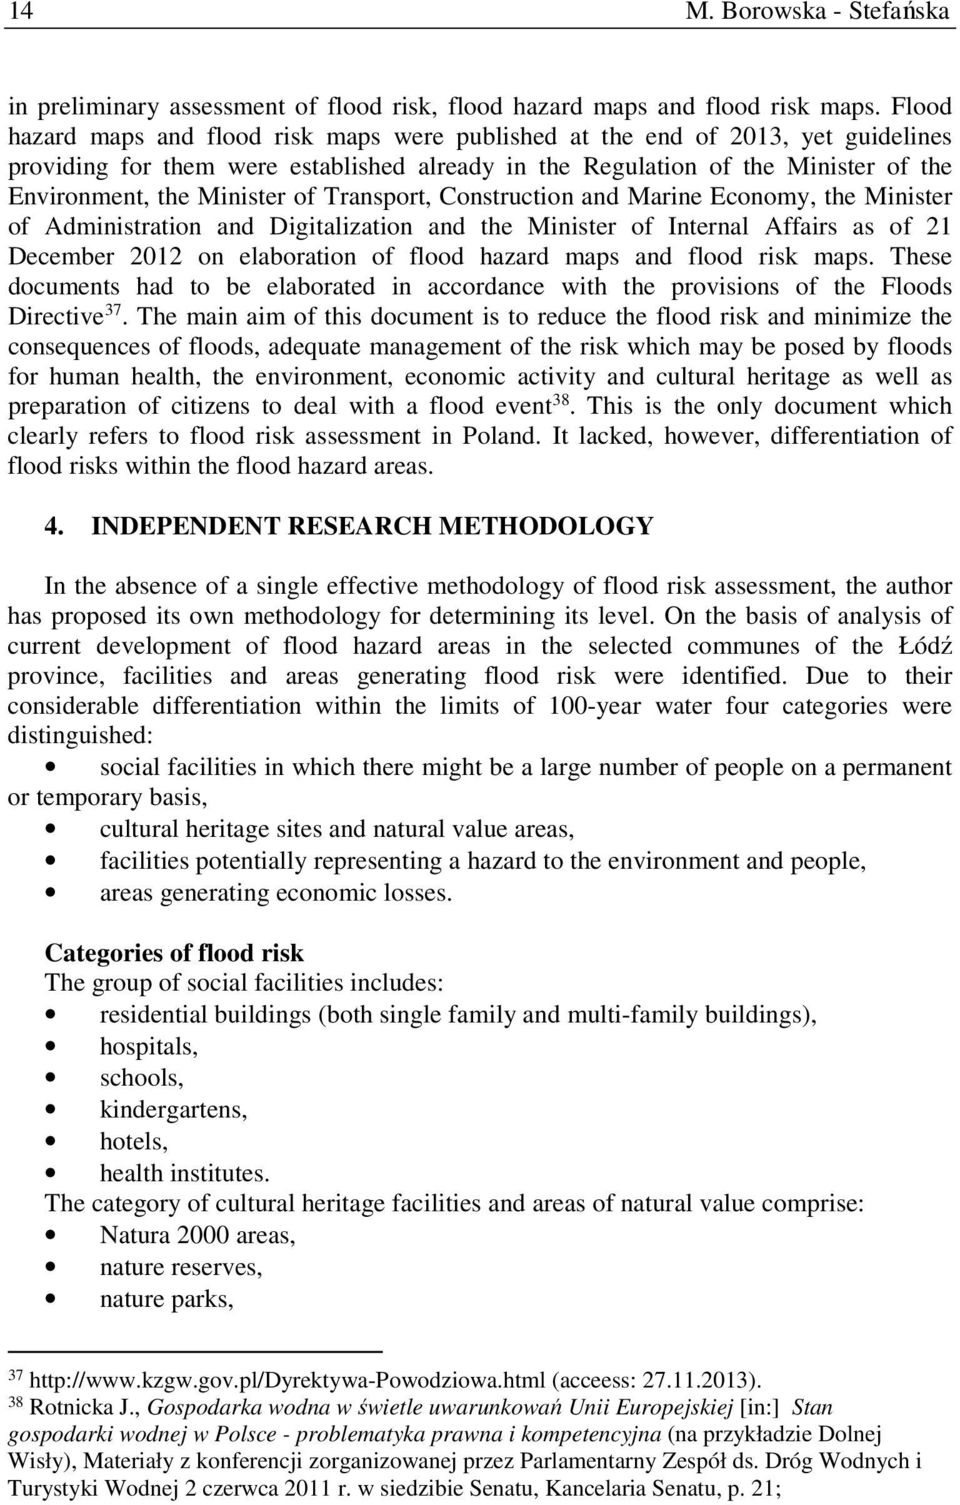 of Transport, Construction and Marine Economy, the Minister of Administration and Digitalization and the Minister of Internal Affairs as of 21 December 2012 on elaboration of flood hazard maps and